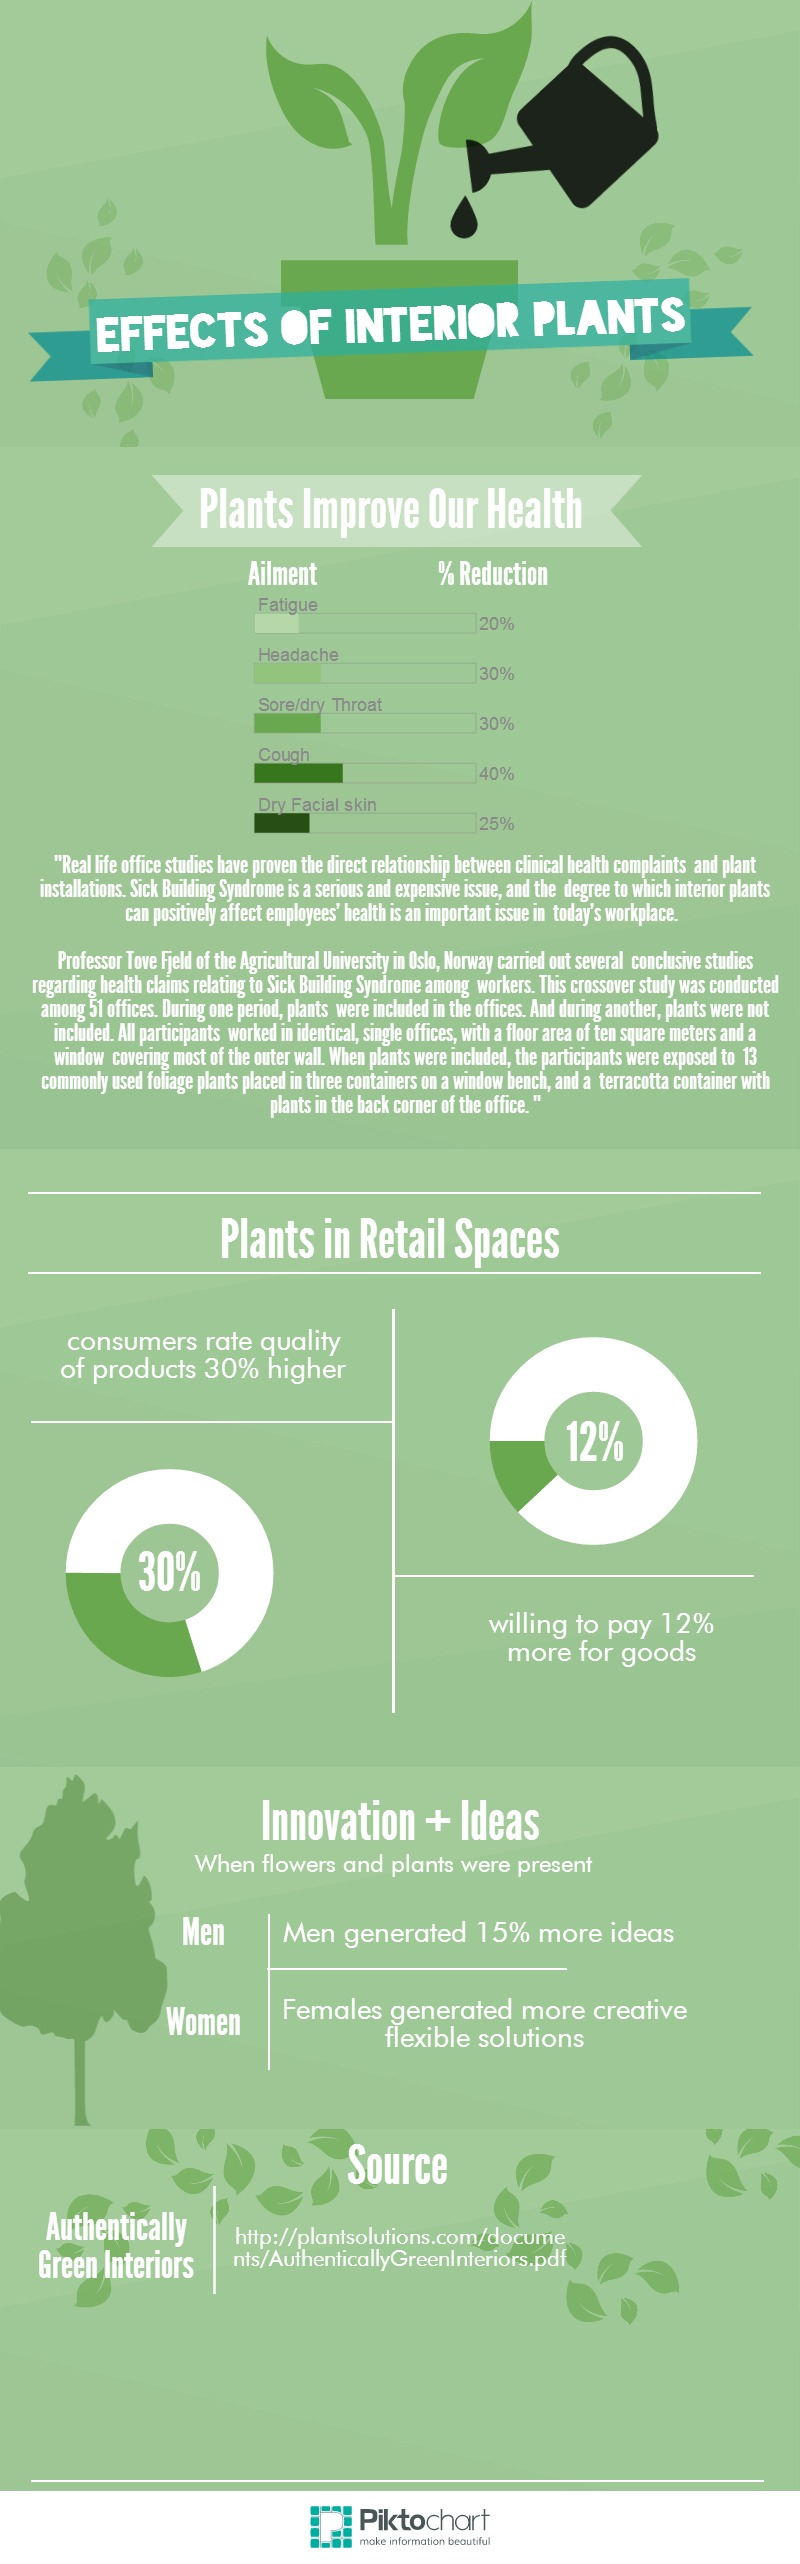 effects of interior plants